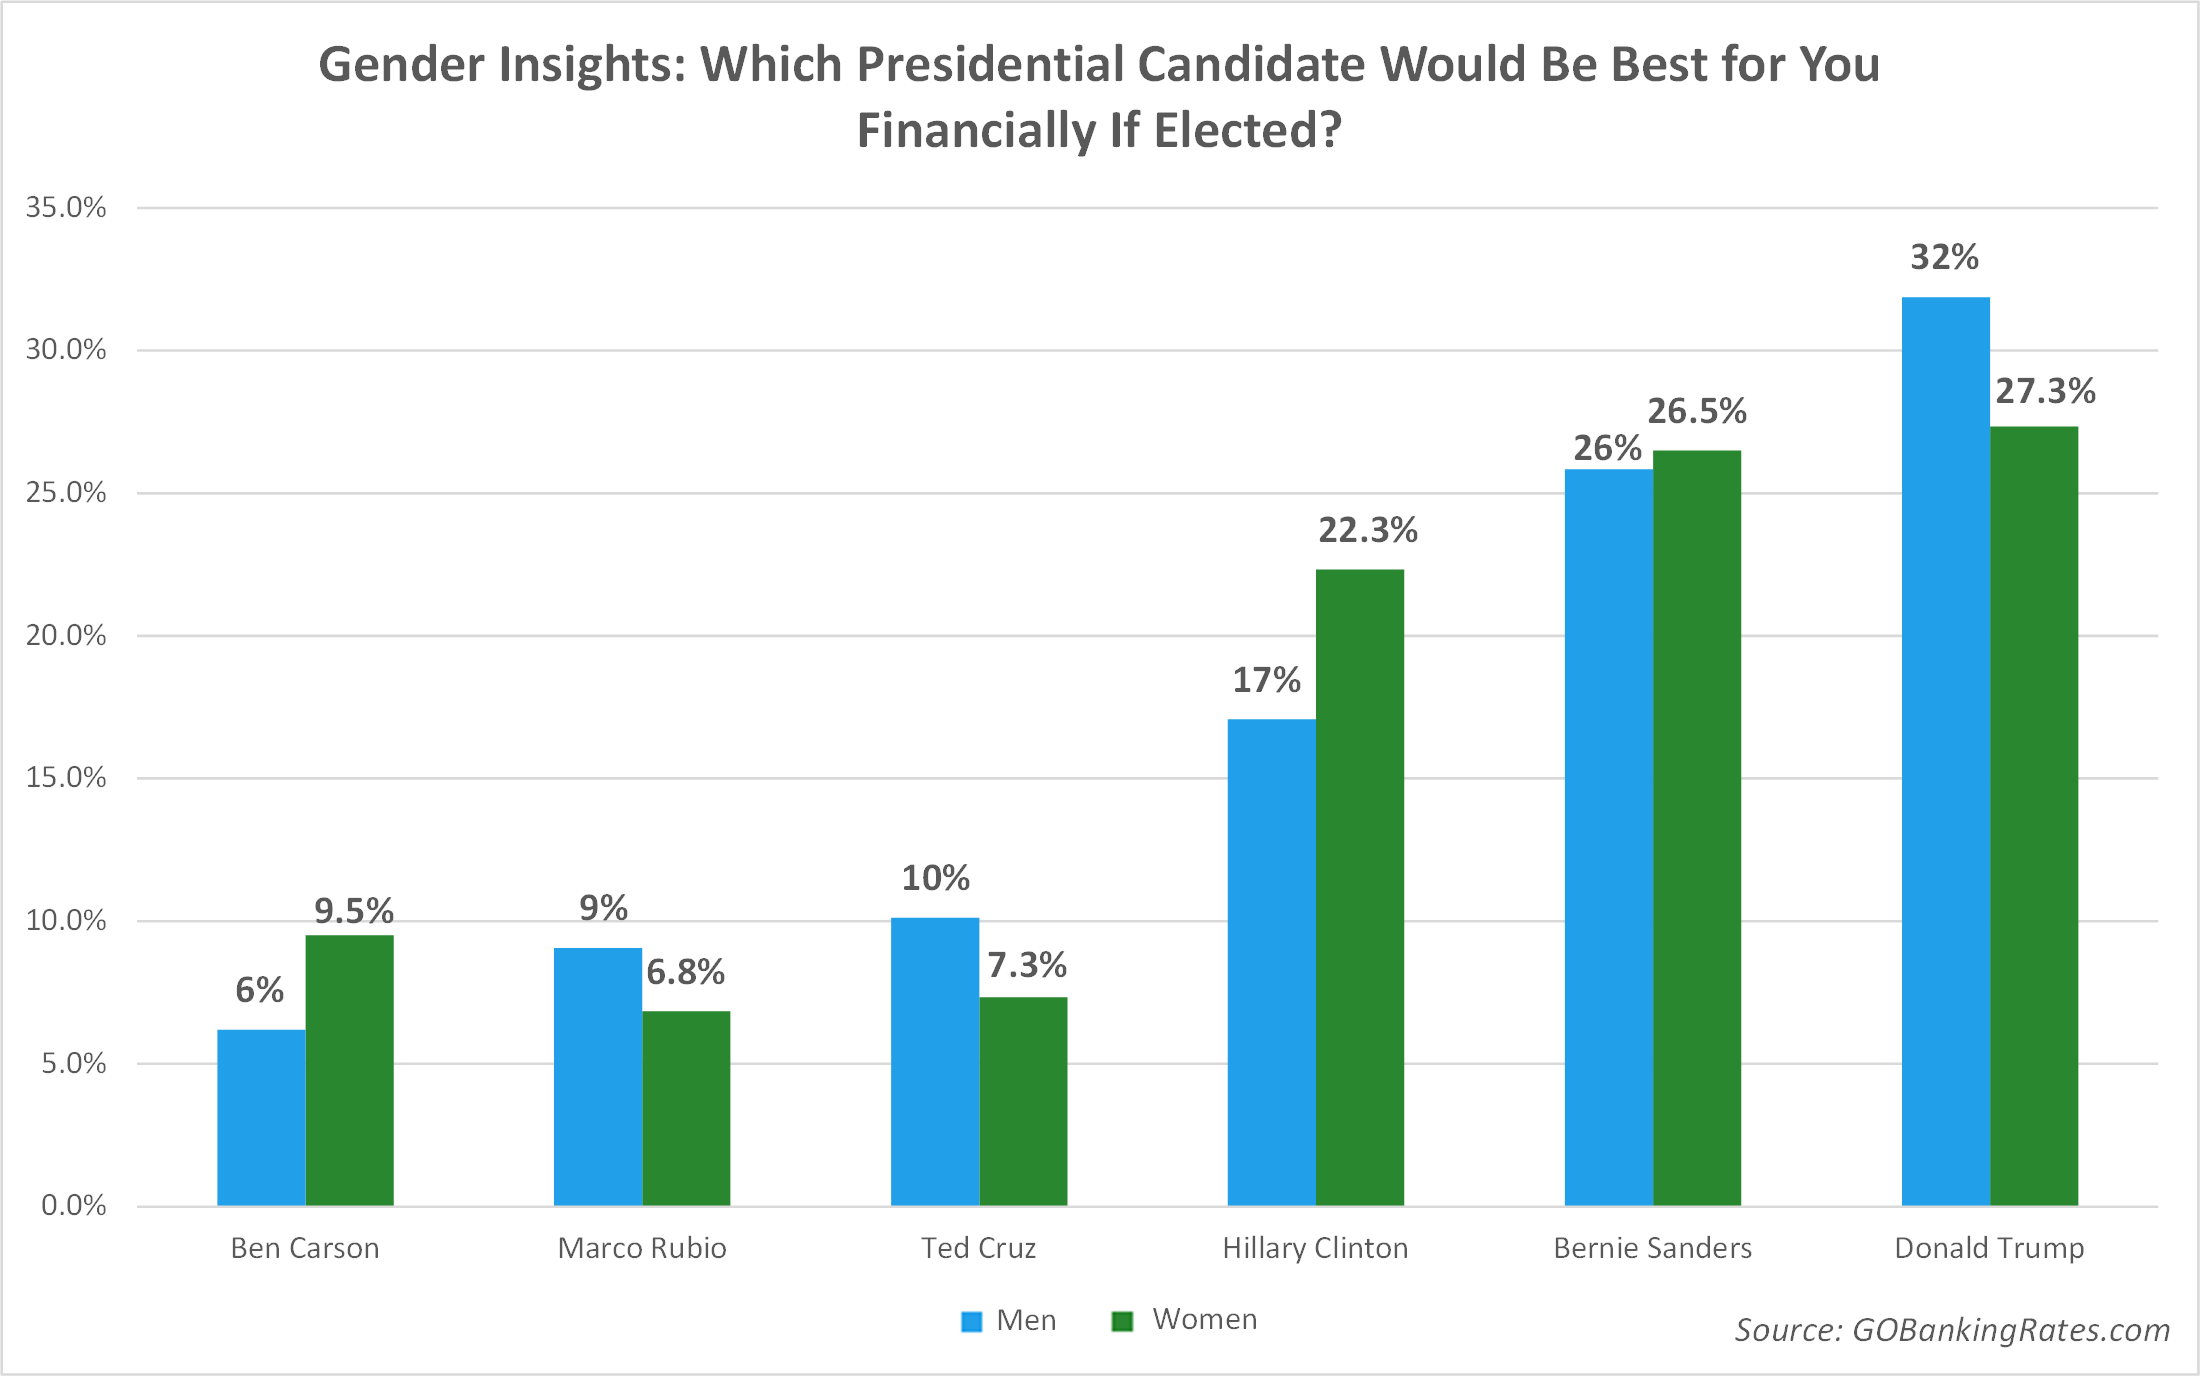 Gender Insights: Which Presidential Candidate Would Be Best for You Financially If Elected?